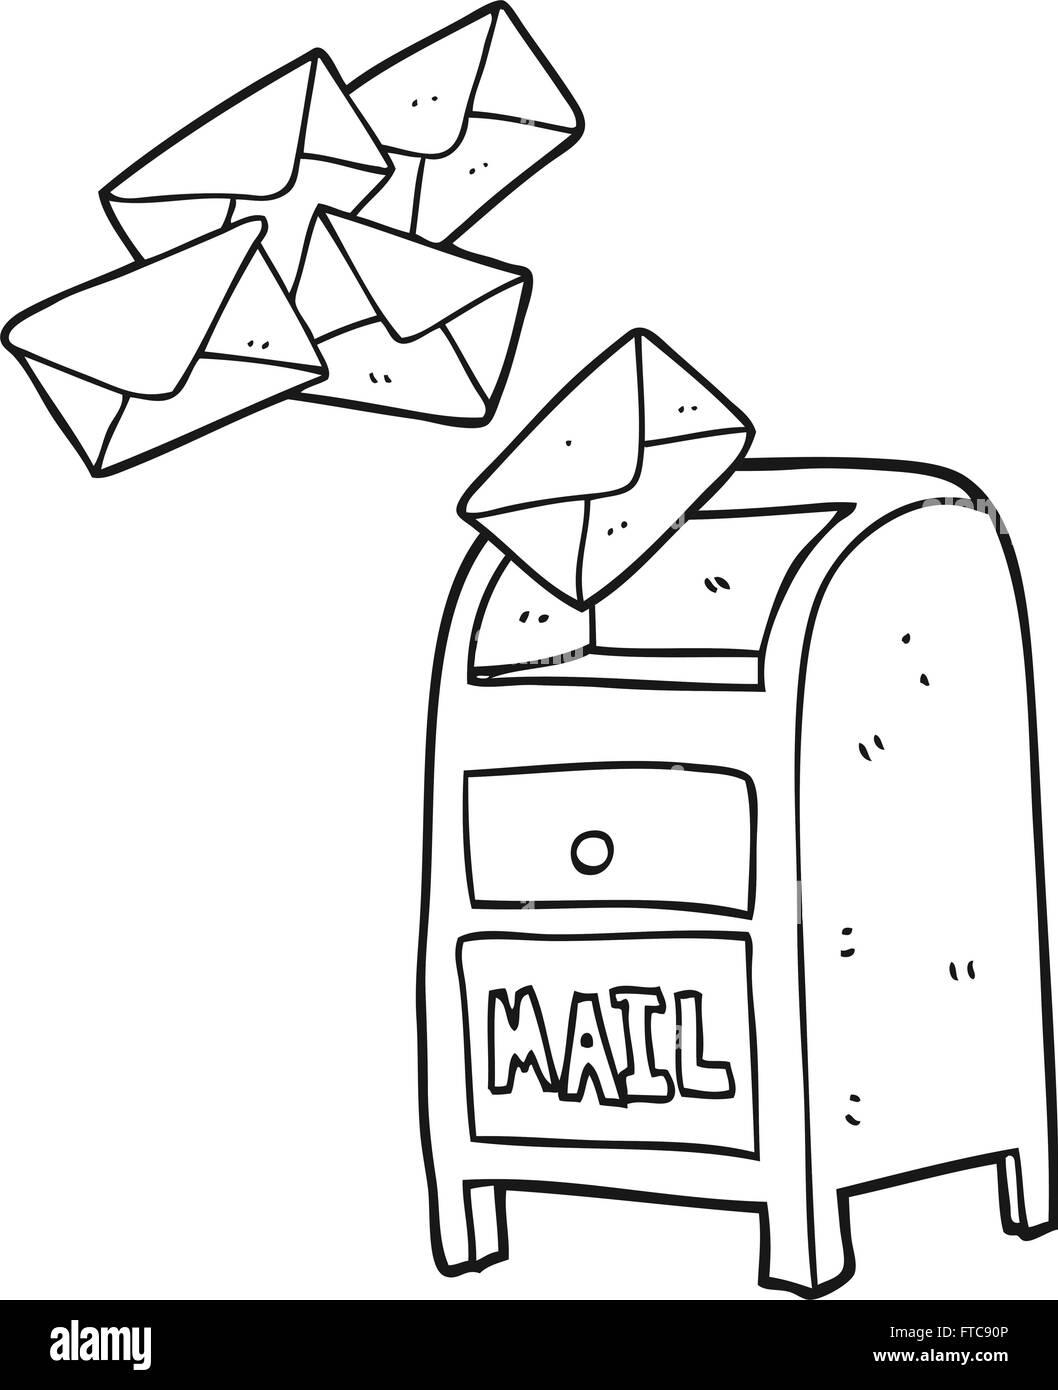 Freehand Drawn Black And White Cartoon Mail Box Stock